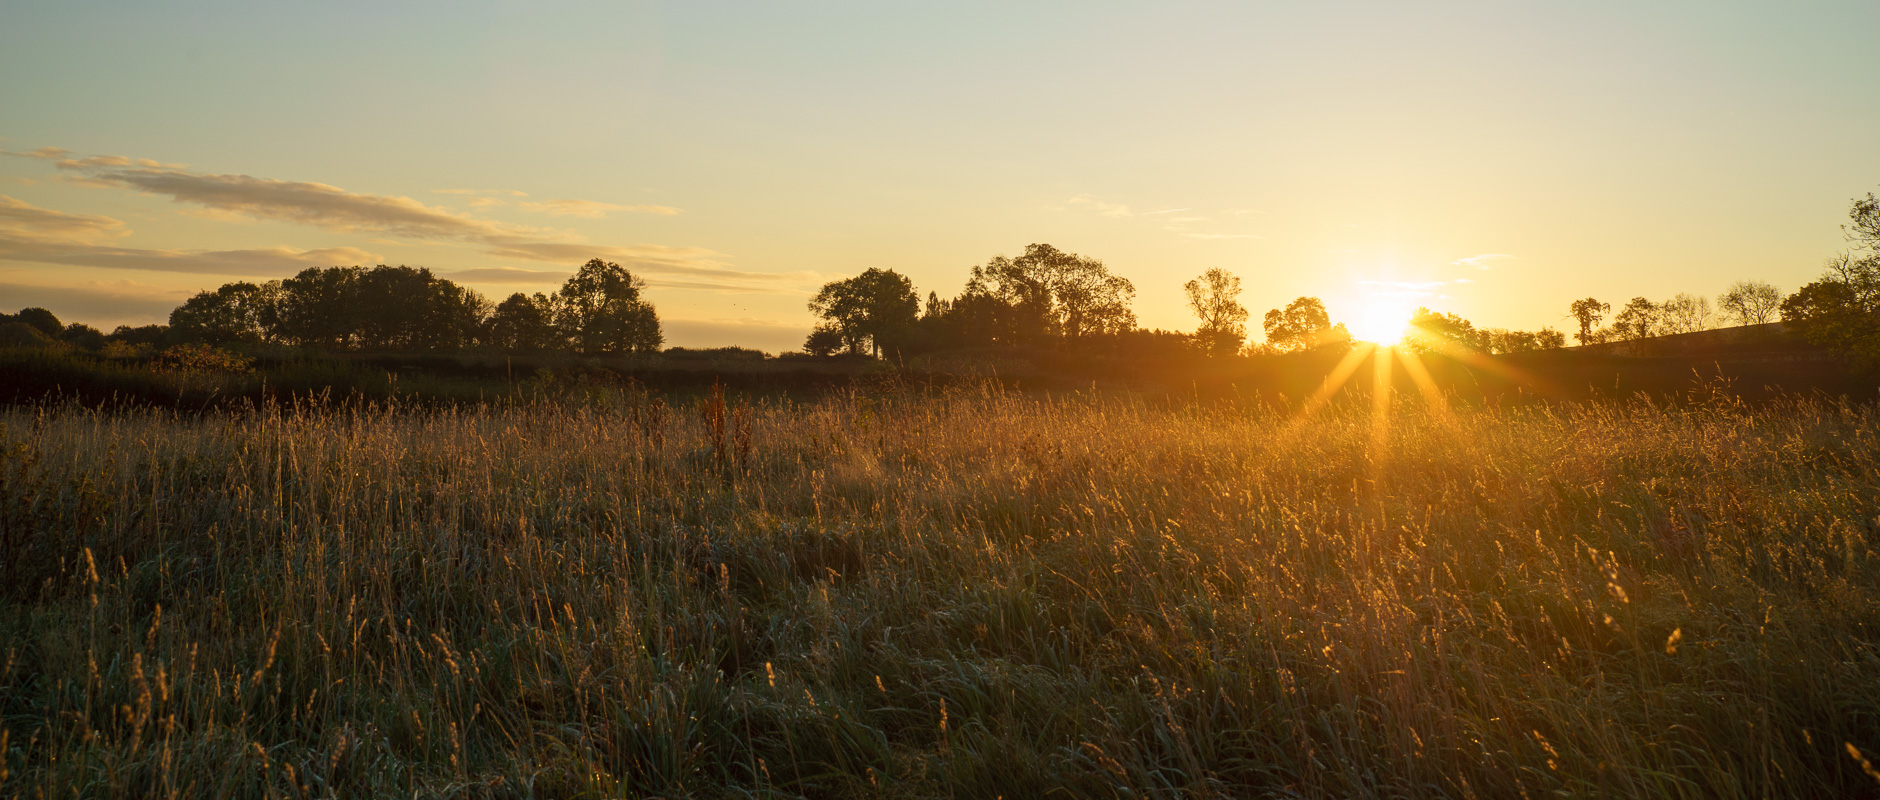 #7 - Long grass backlit by the sun